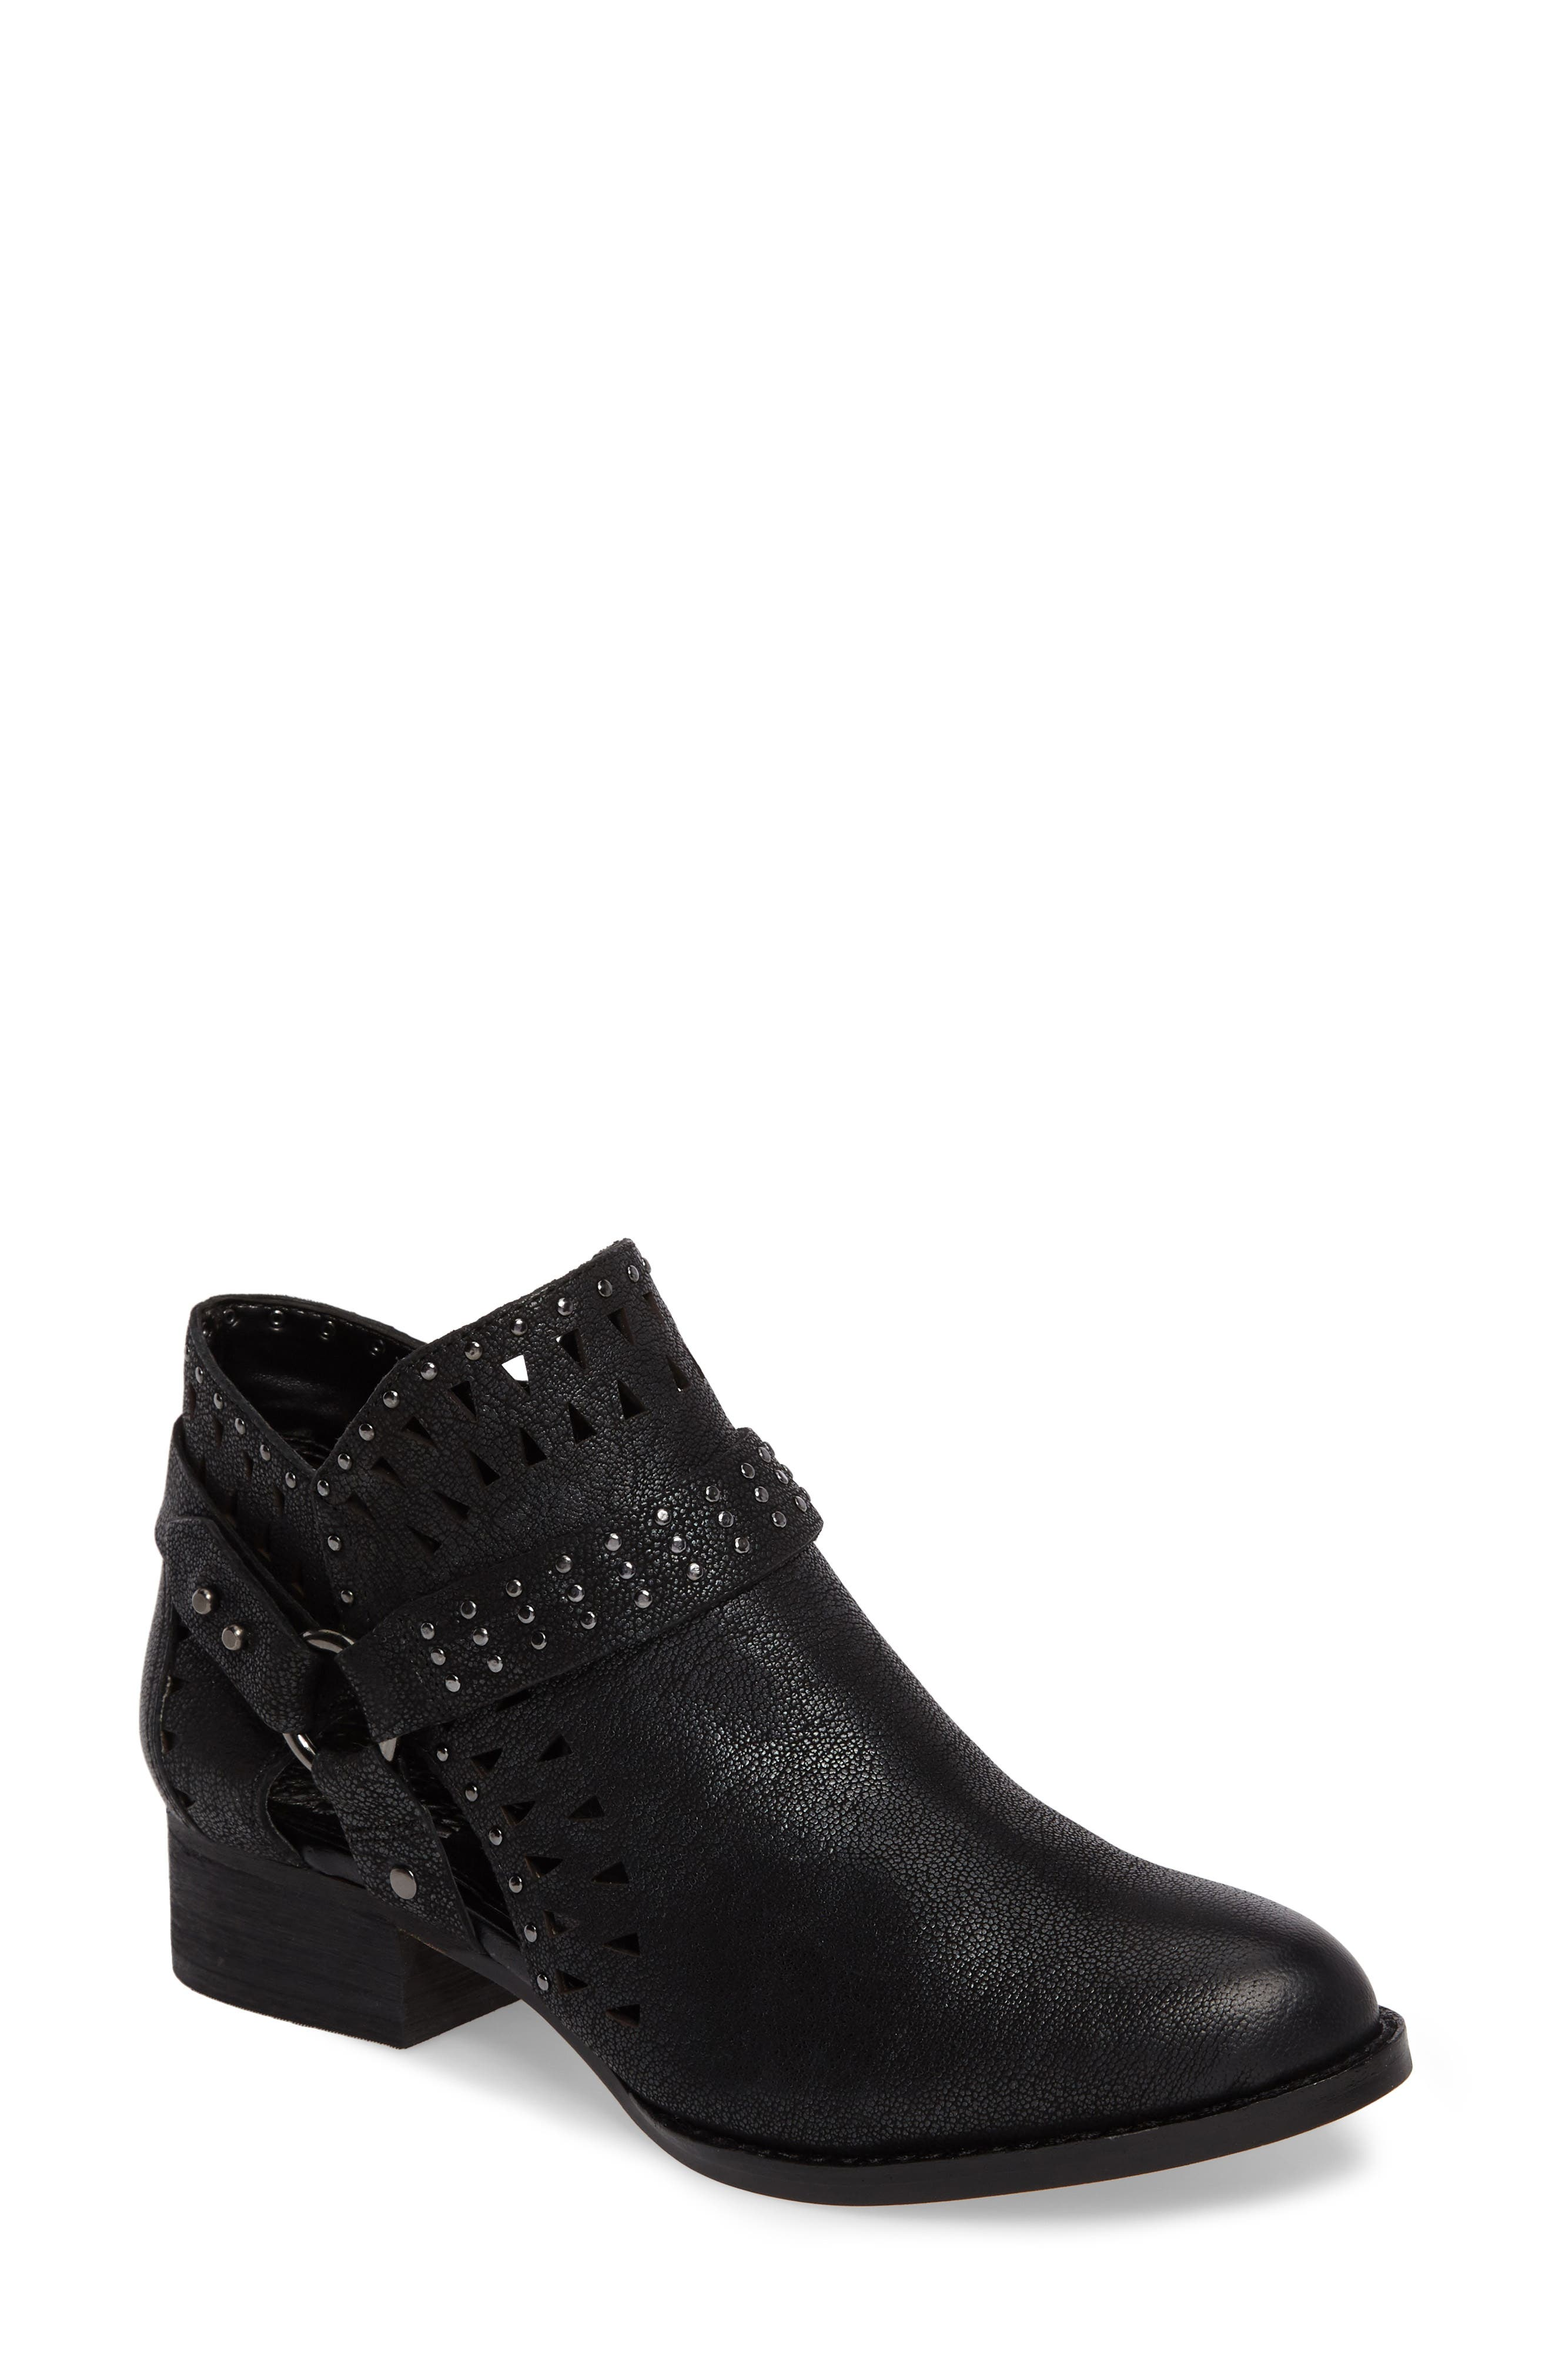 Calley Strappy Studded Bootie,                         Main,                         color, 001